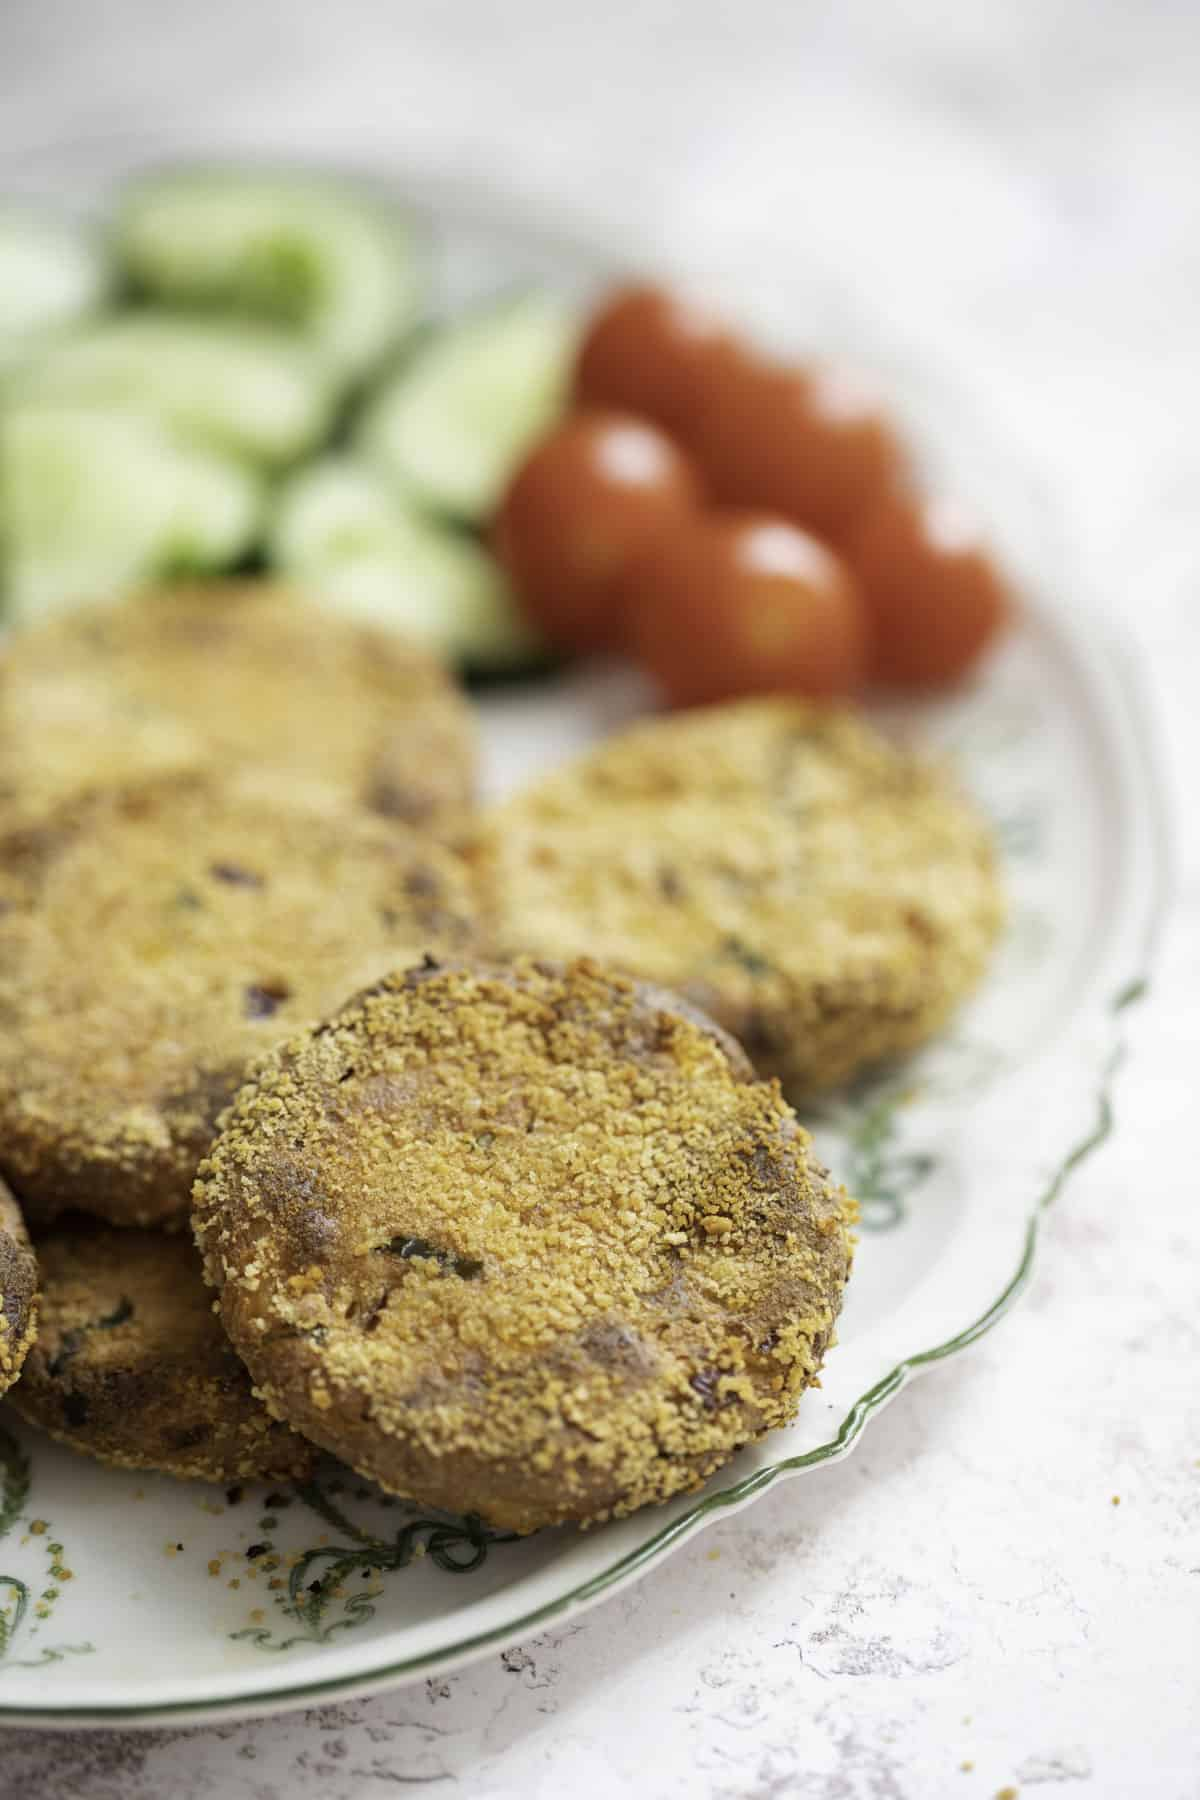 crispy baked paneer cutlets served with cucumber and tomato salad